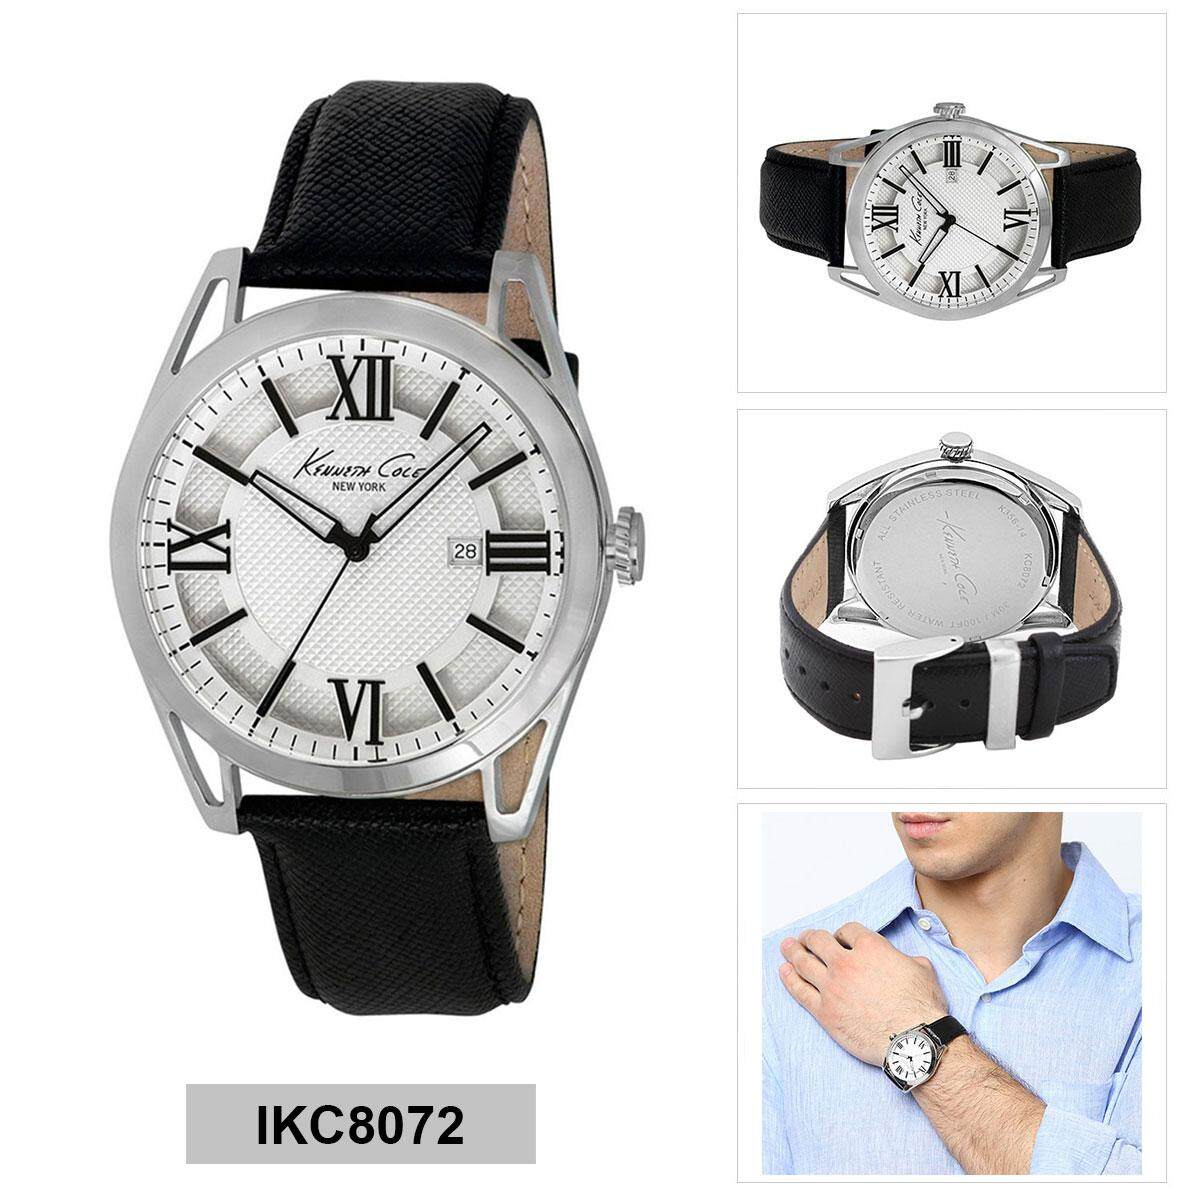 Kenneth Cole Watch New York Black Stainless Steel Case Leather Strap Emporio Armani Ar1828 Jam Tangan Pria Silver Mens Ikc8072 Intl